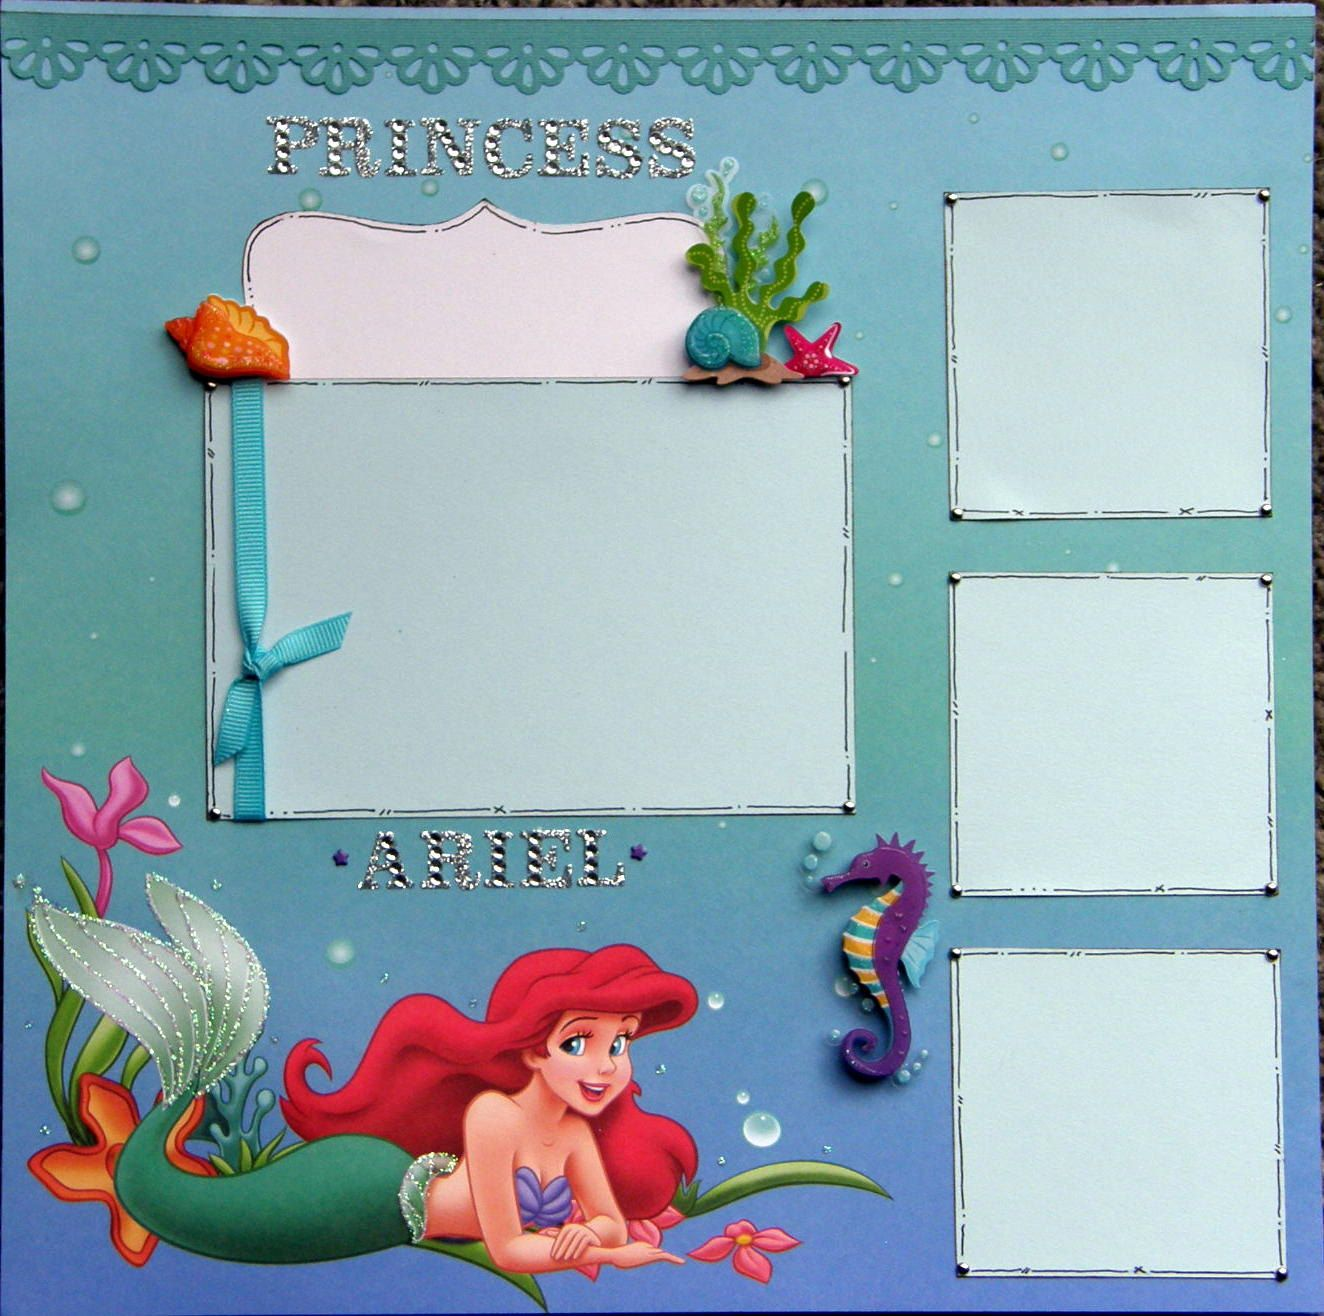 How to scrapbook disney - 12x12 Single Page Scrapbook Layout Disney S Ariel The By Ntvimage 13 99